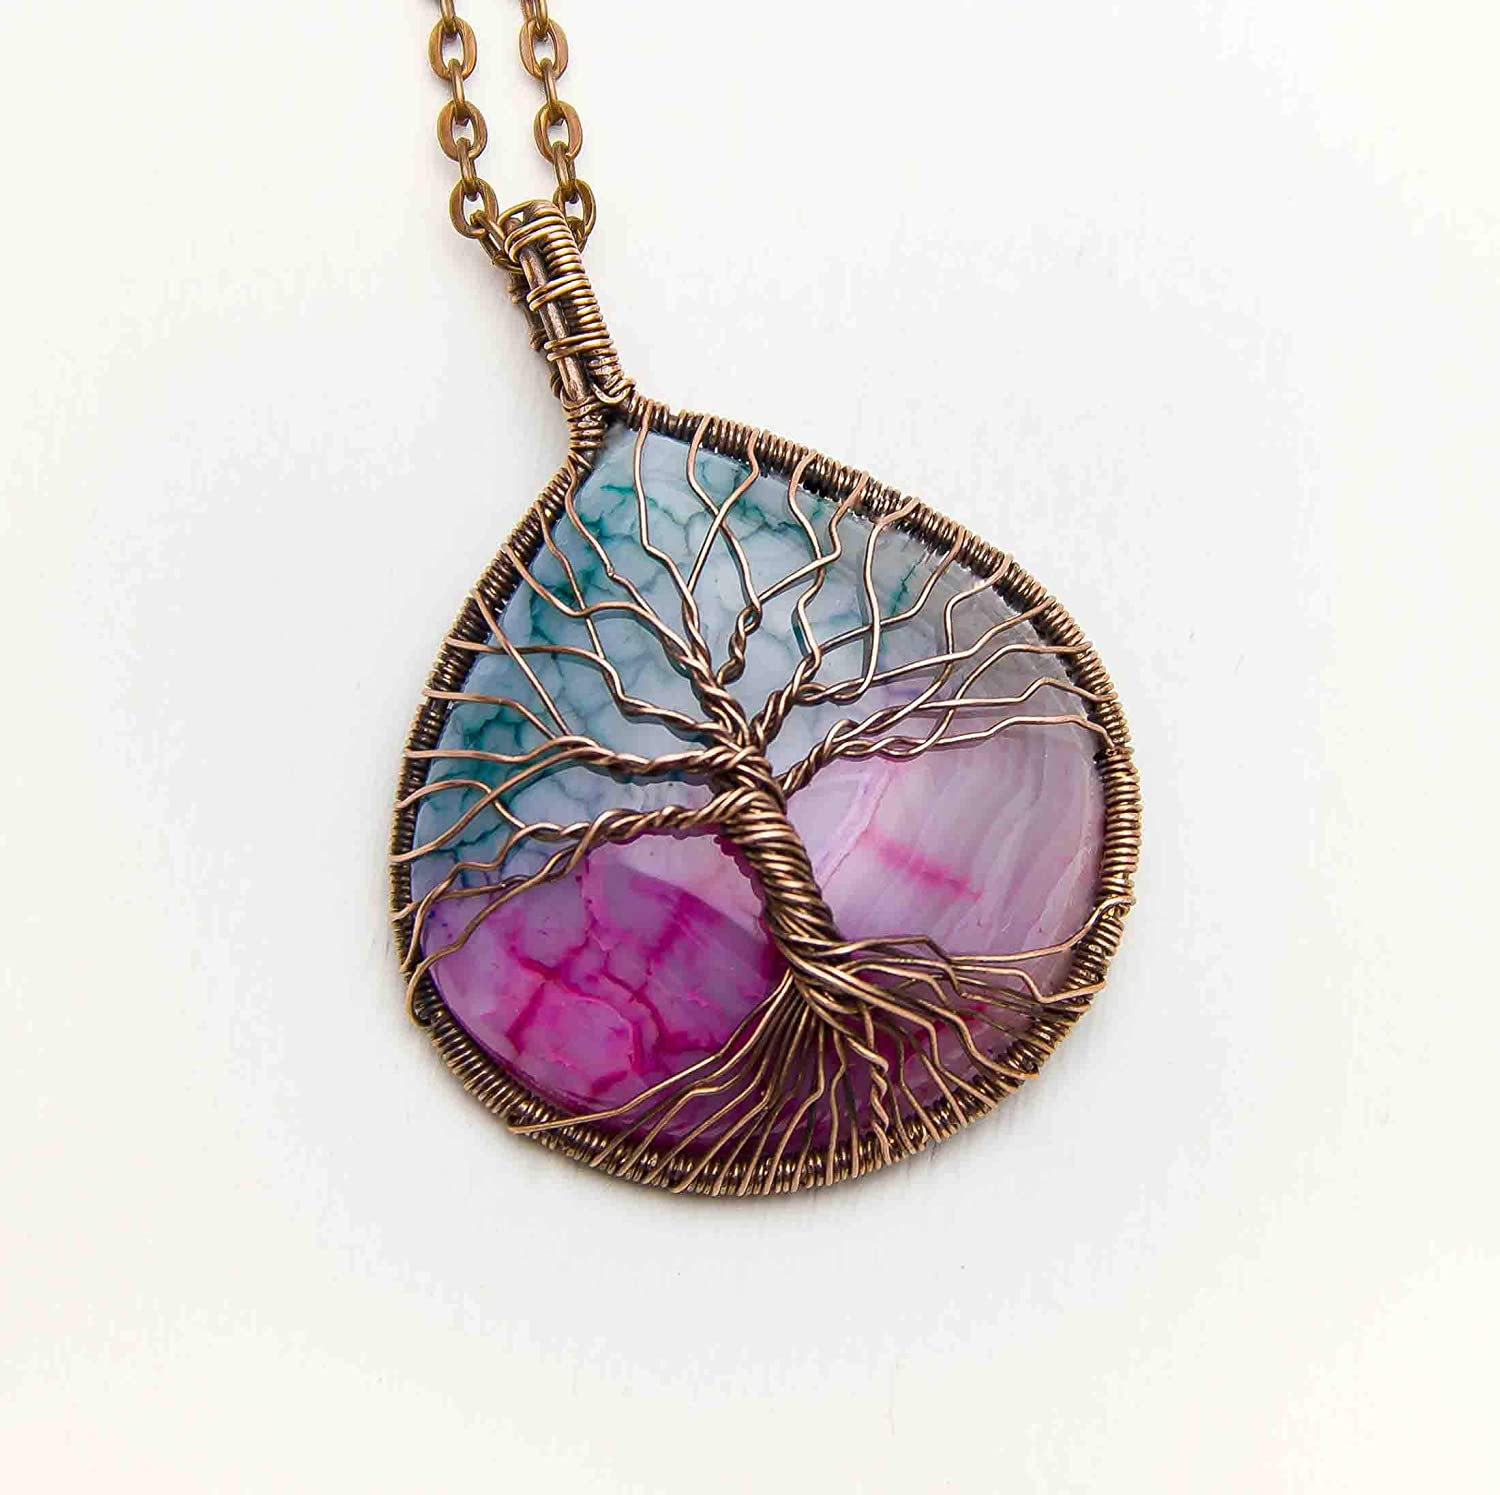 Turquoise Tree of life pendant necklace Copper wire wrap pendant Turquoise Tree necklace Family tree necklace with roots Celtic jewelry